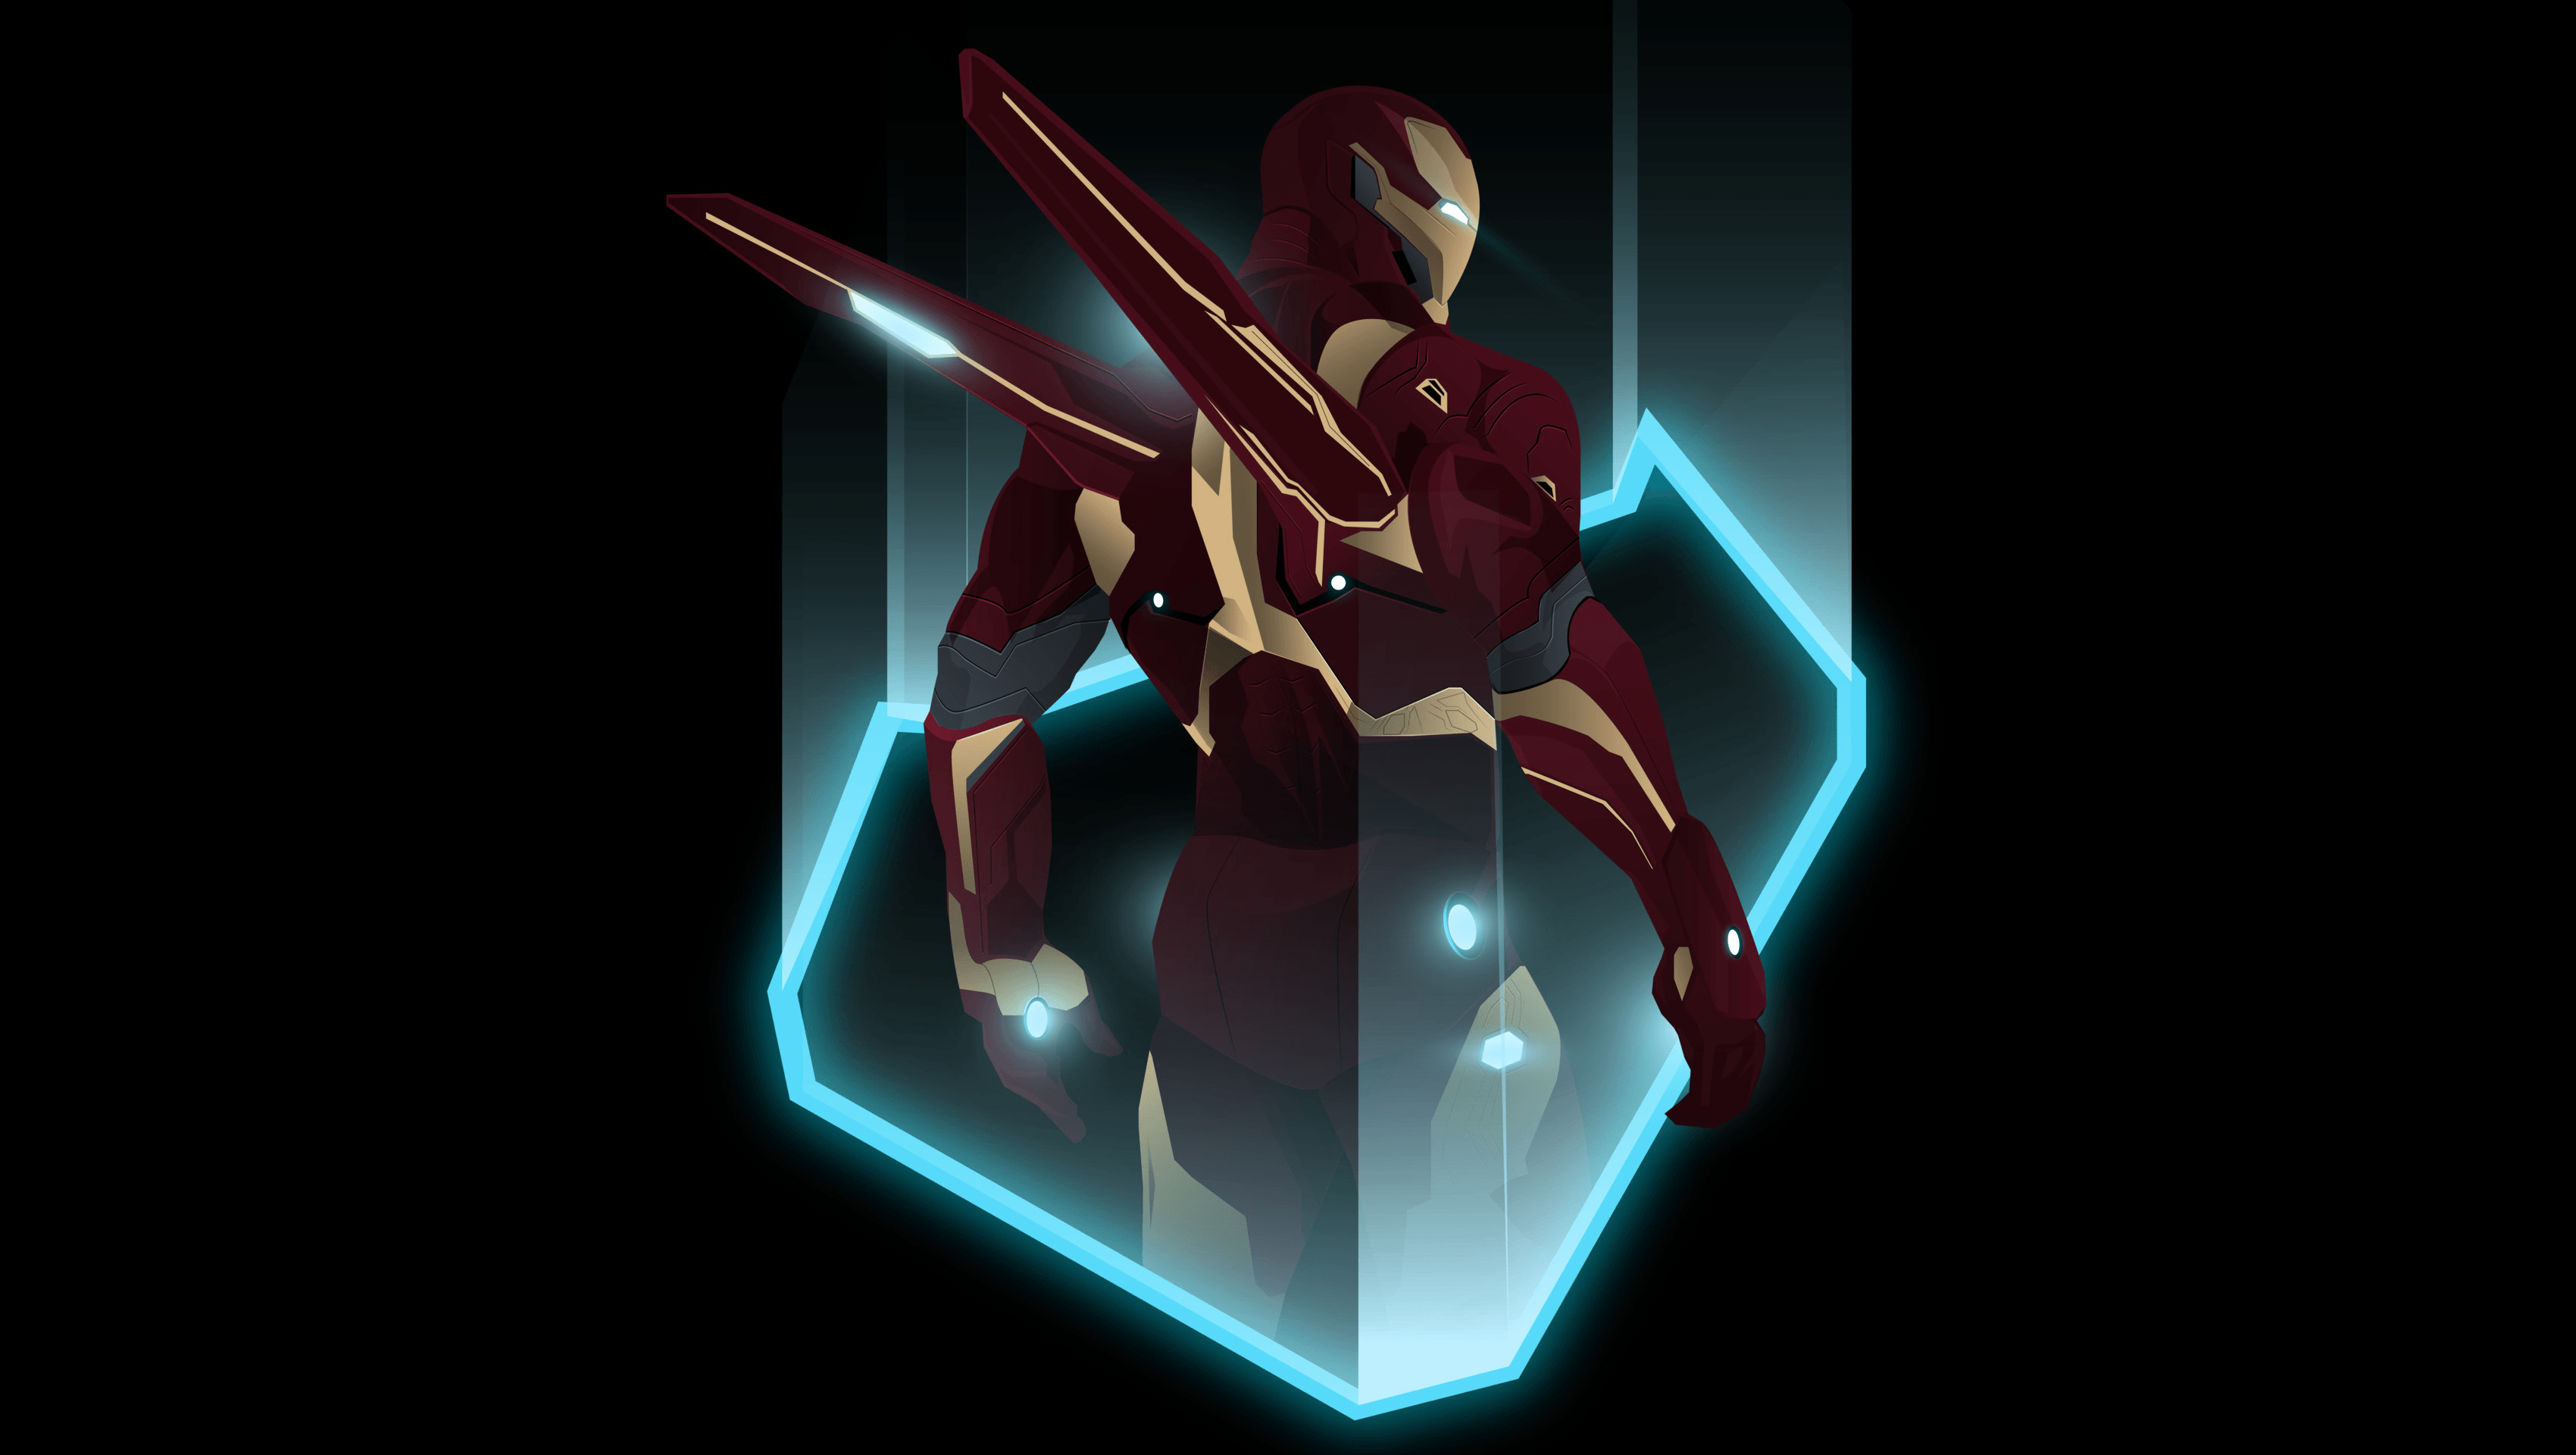 Iron Man Endgame Wallpapers Wallpaper Cave